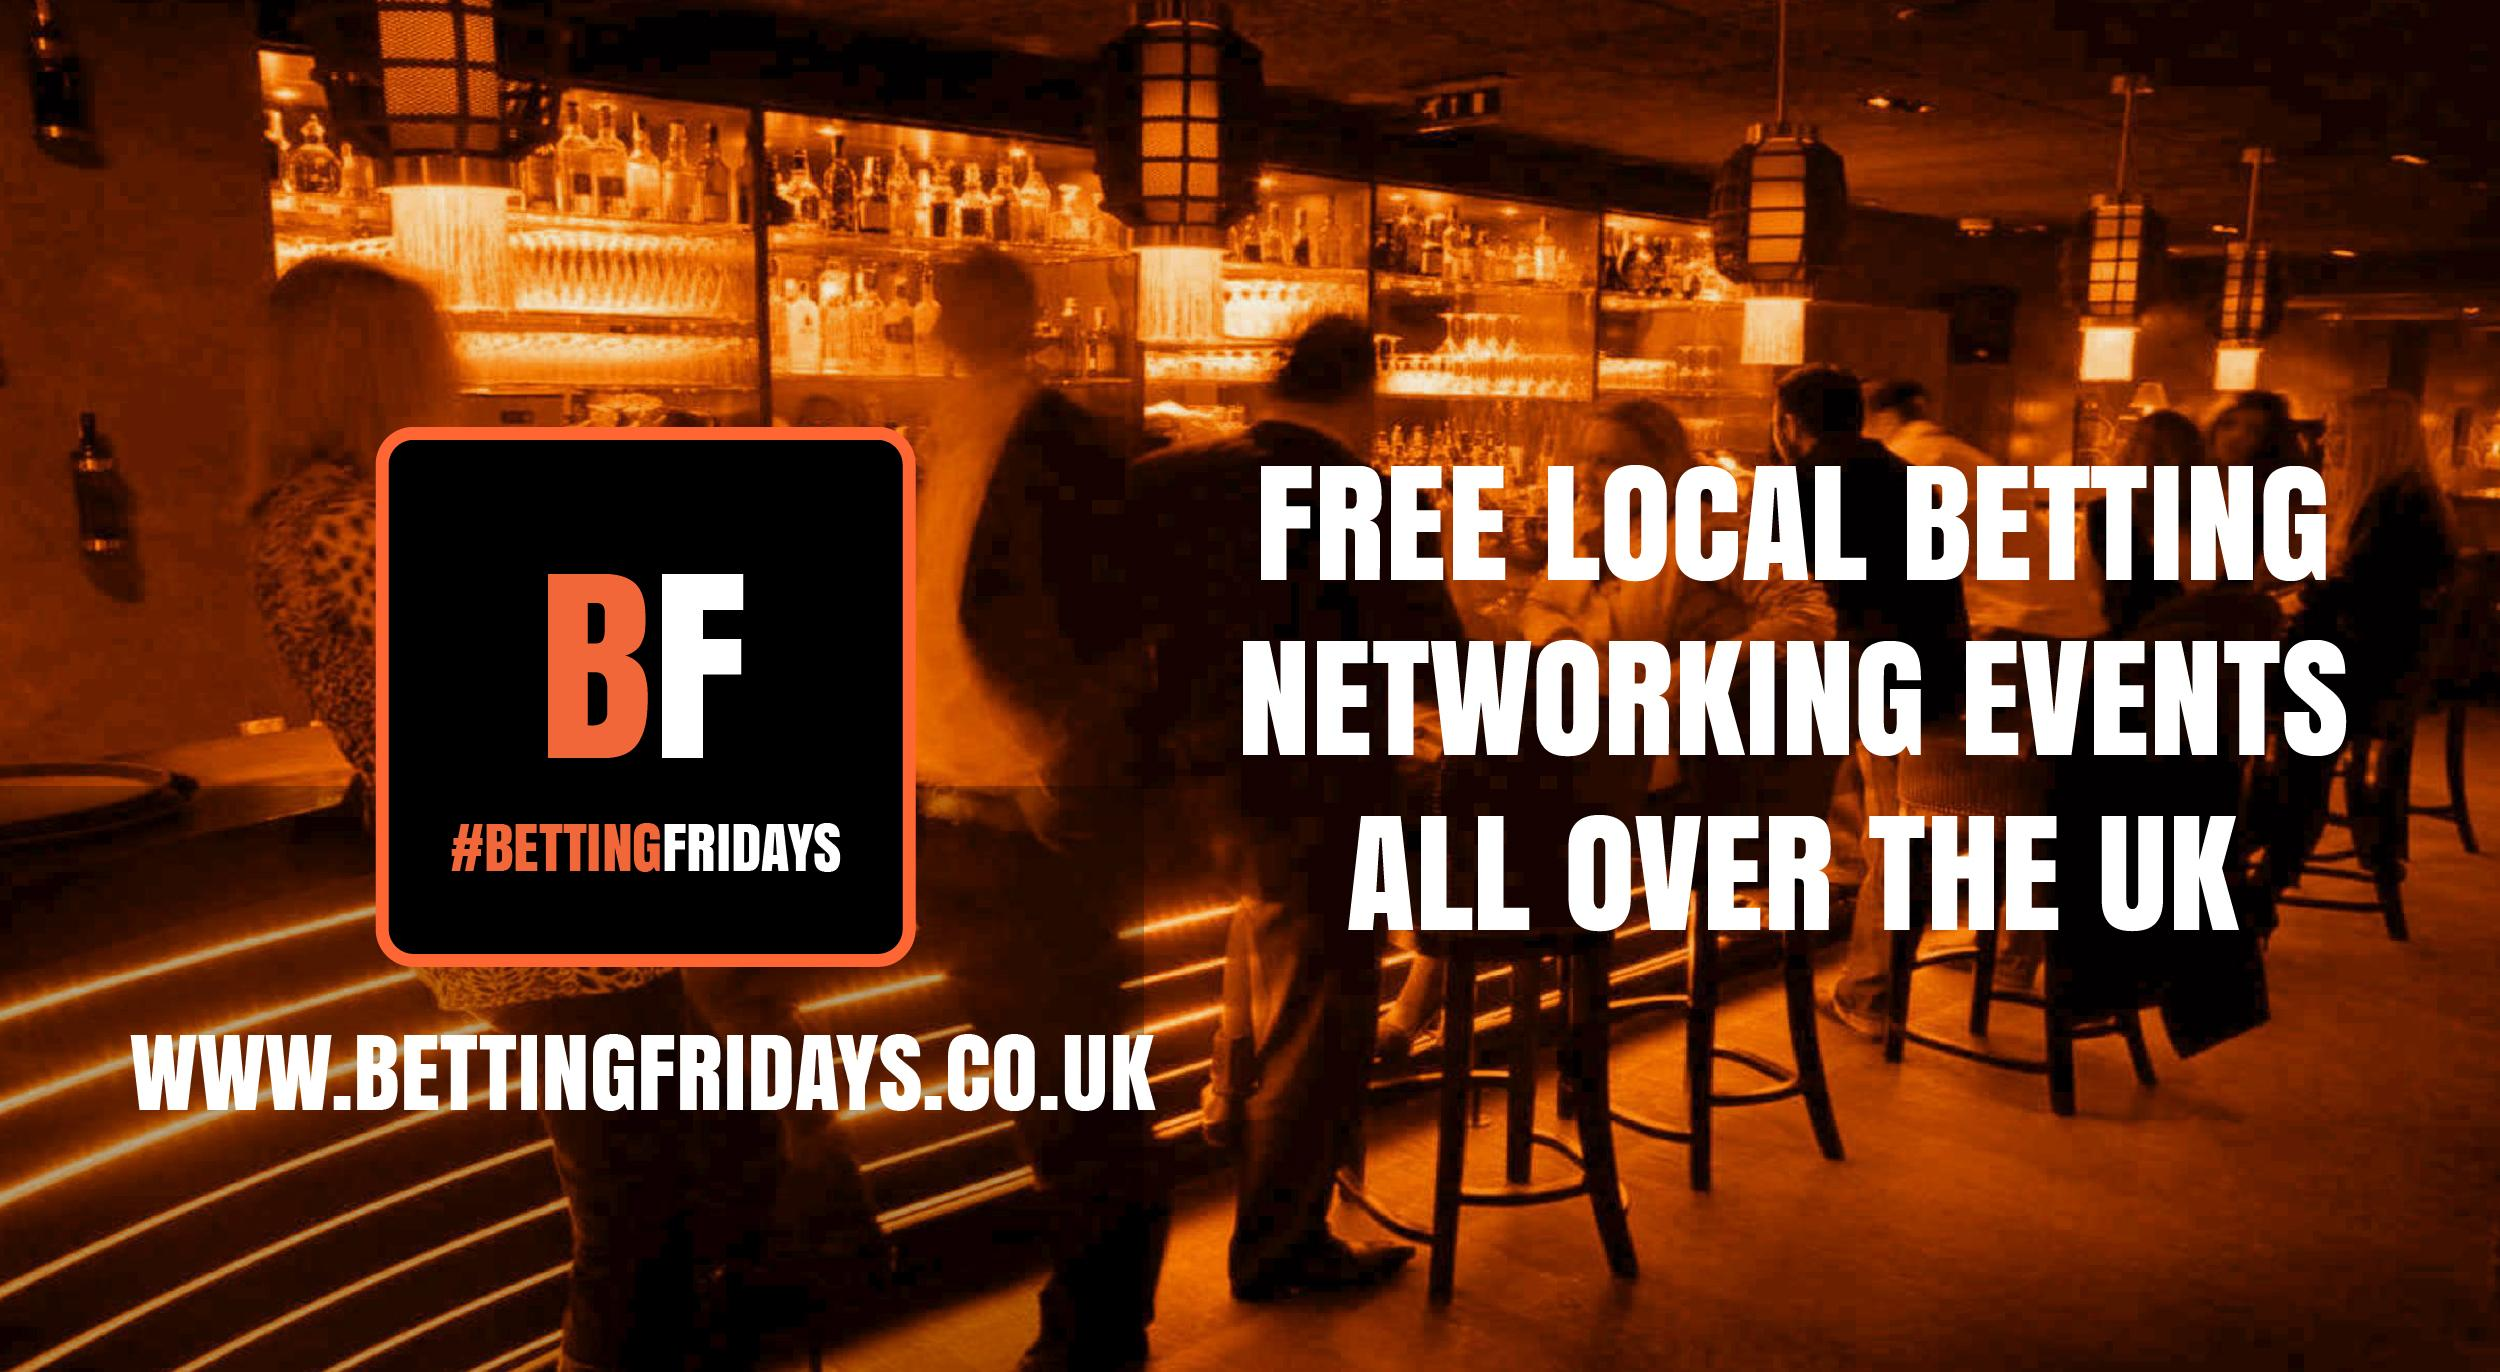 Betting Fridays! Free betting networking event in Henley-on-Thames